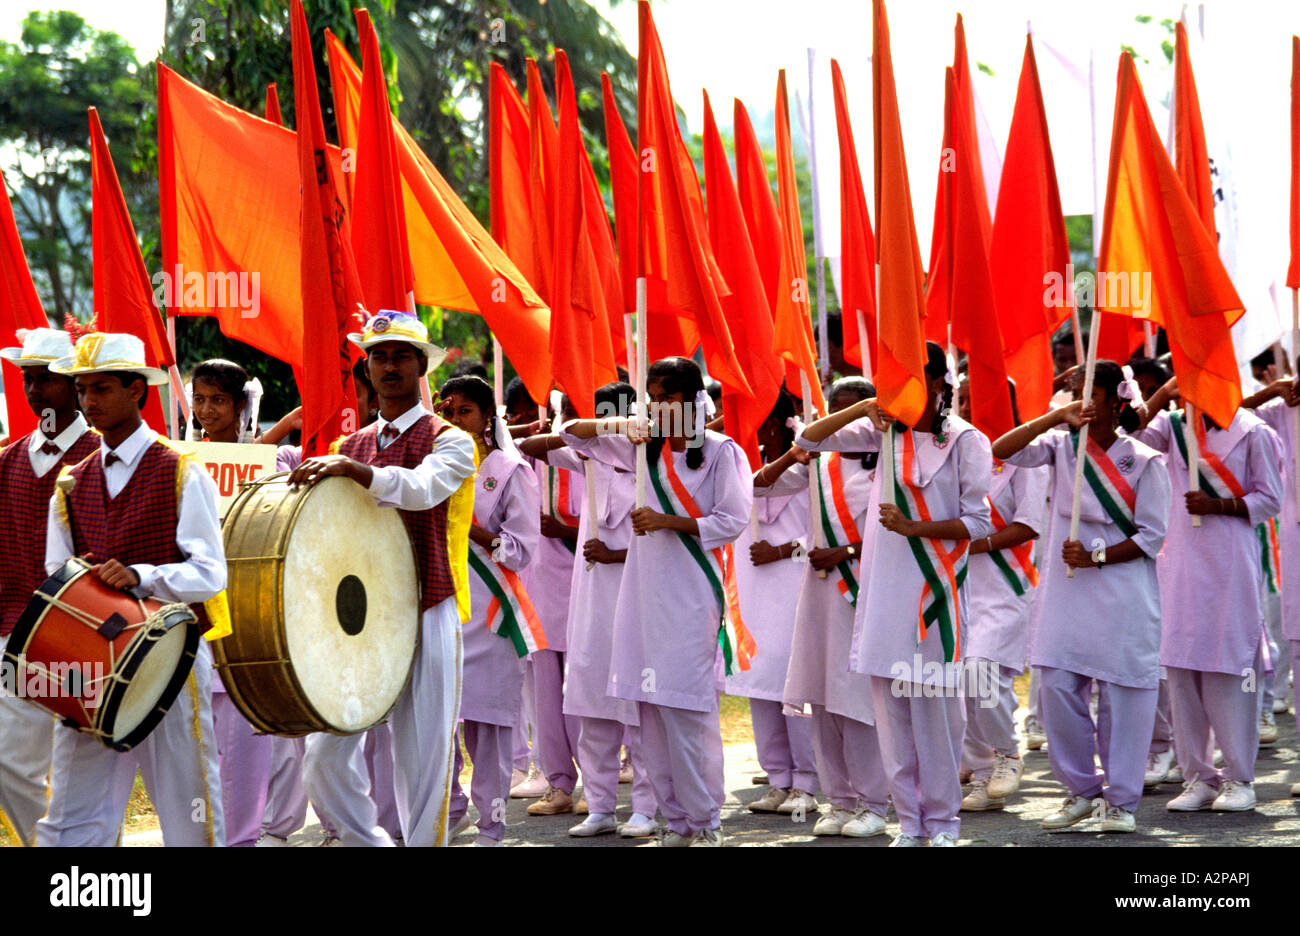 Indian South Andaman Island Port Blair Republic Day parade Indian youth movement carrying flags - Stock Image